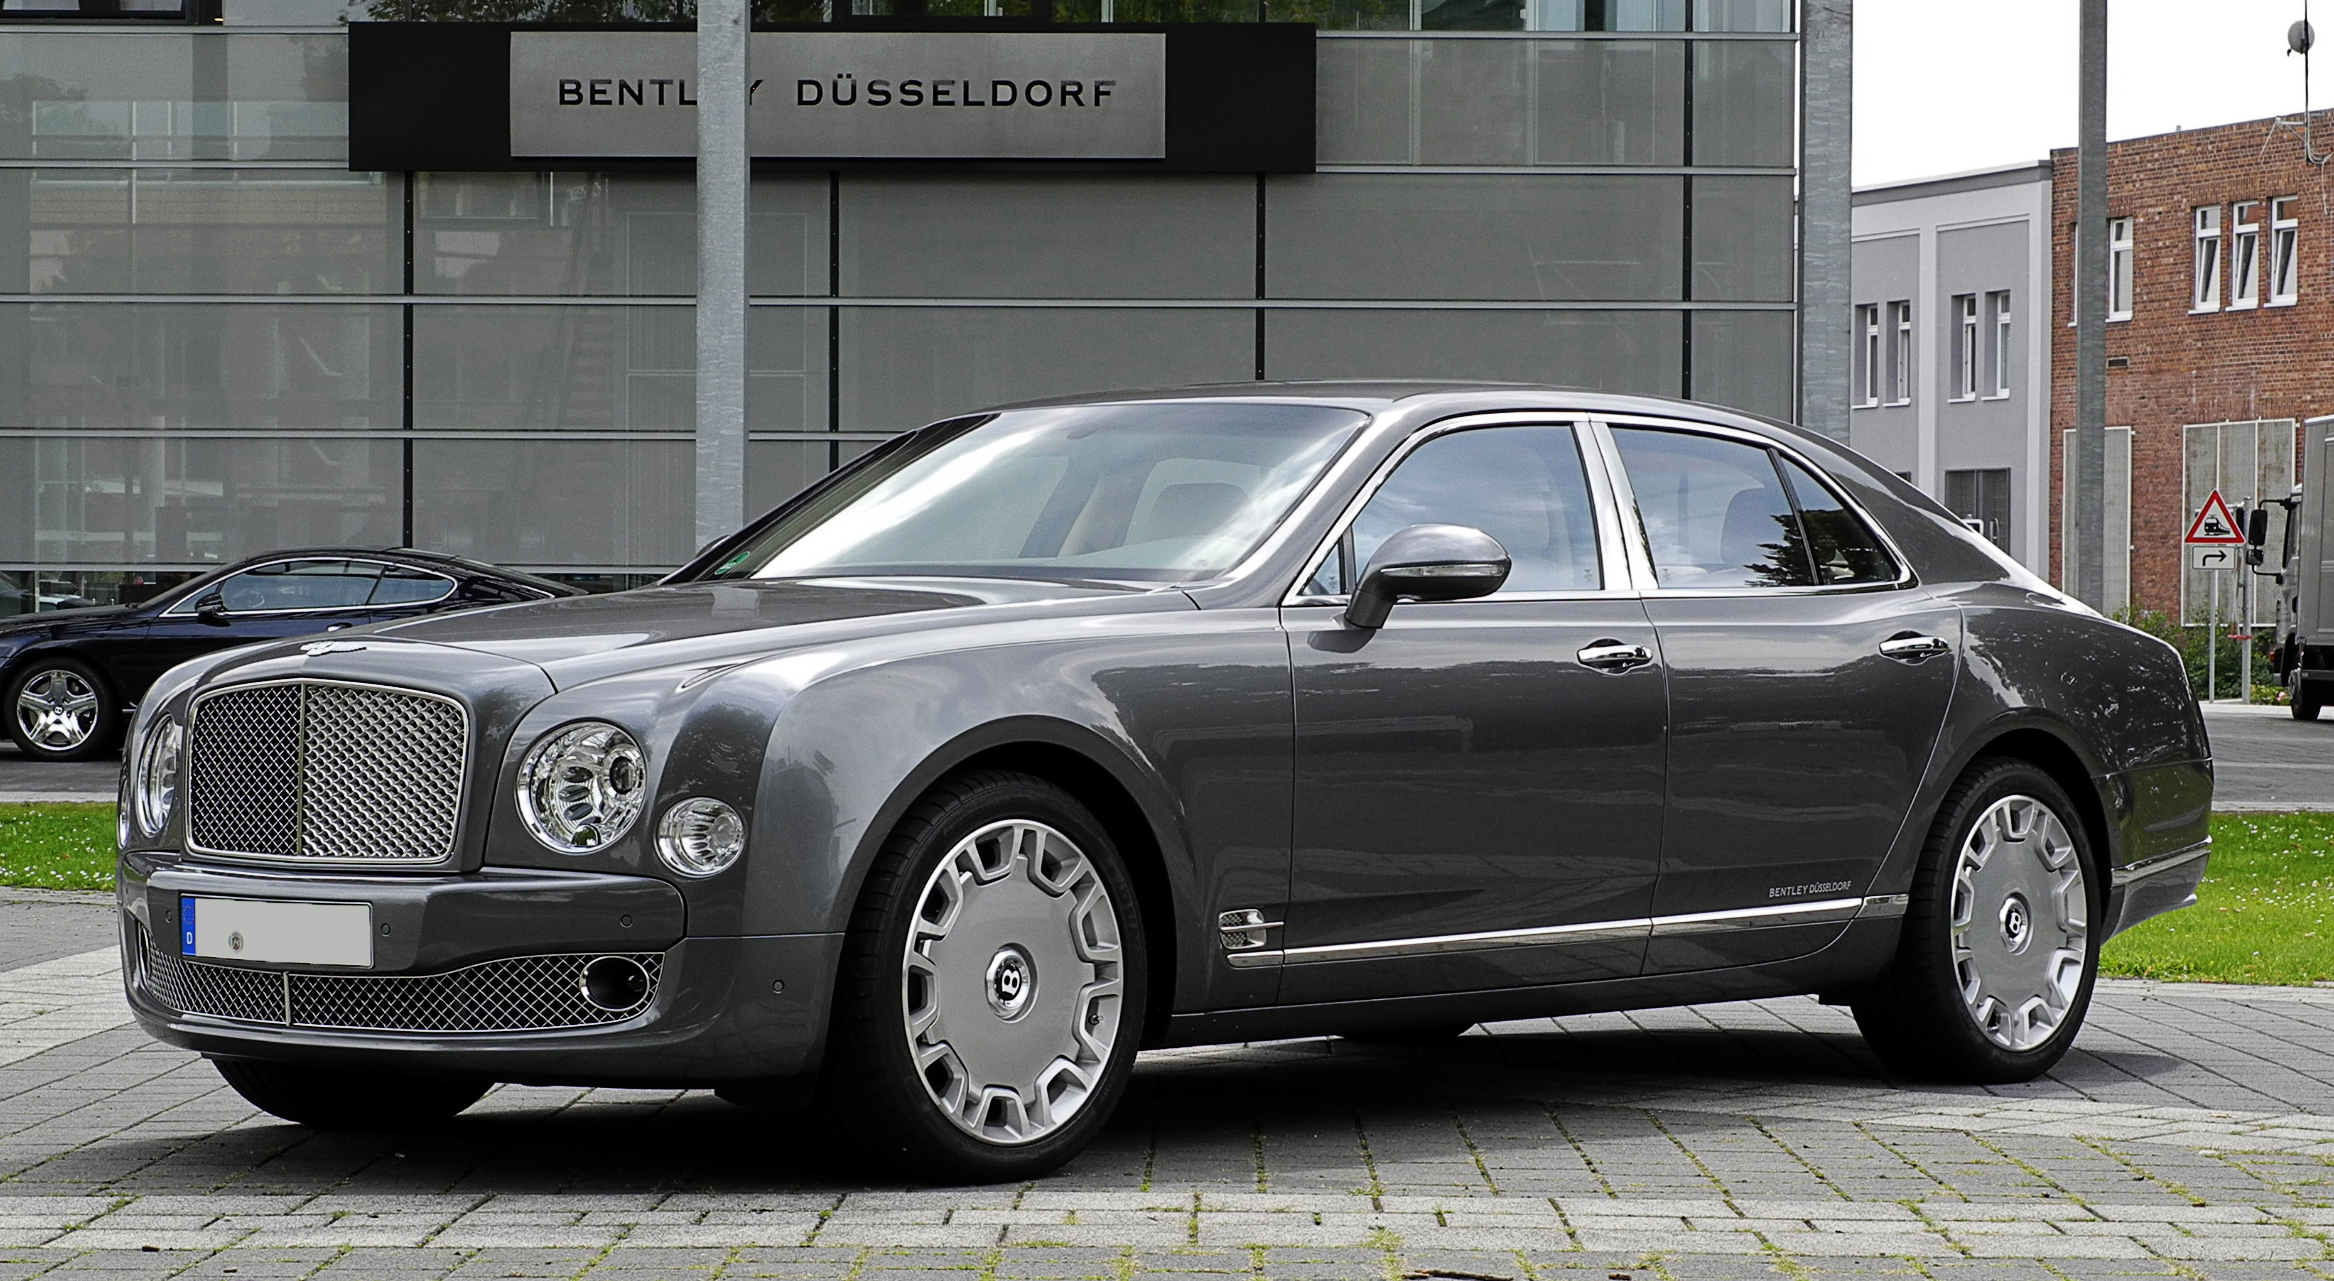 file bentley mulsanne frontansicht 4 10 august 2011 d wikipedia. Black Bedroom Furniture Sets. Home Design Ideas